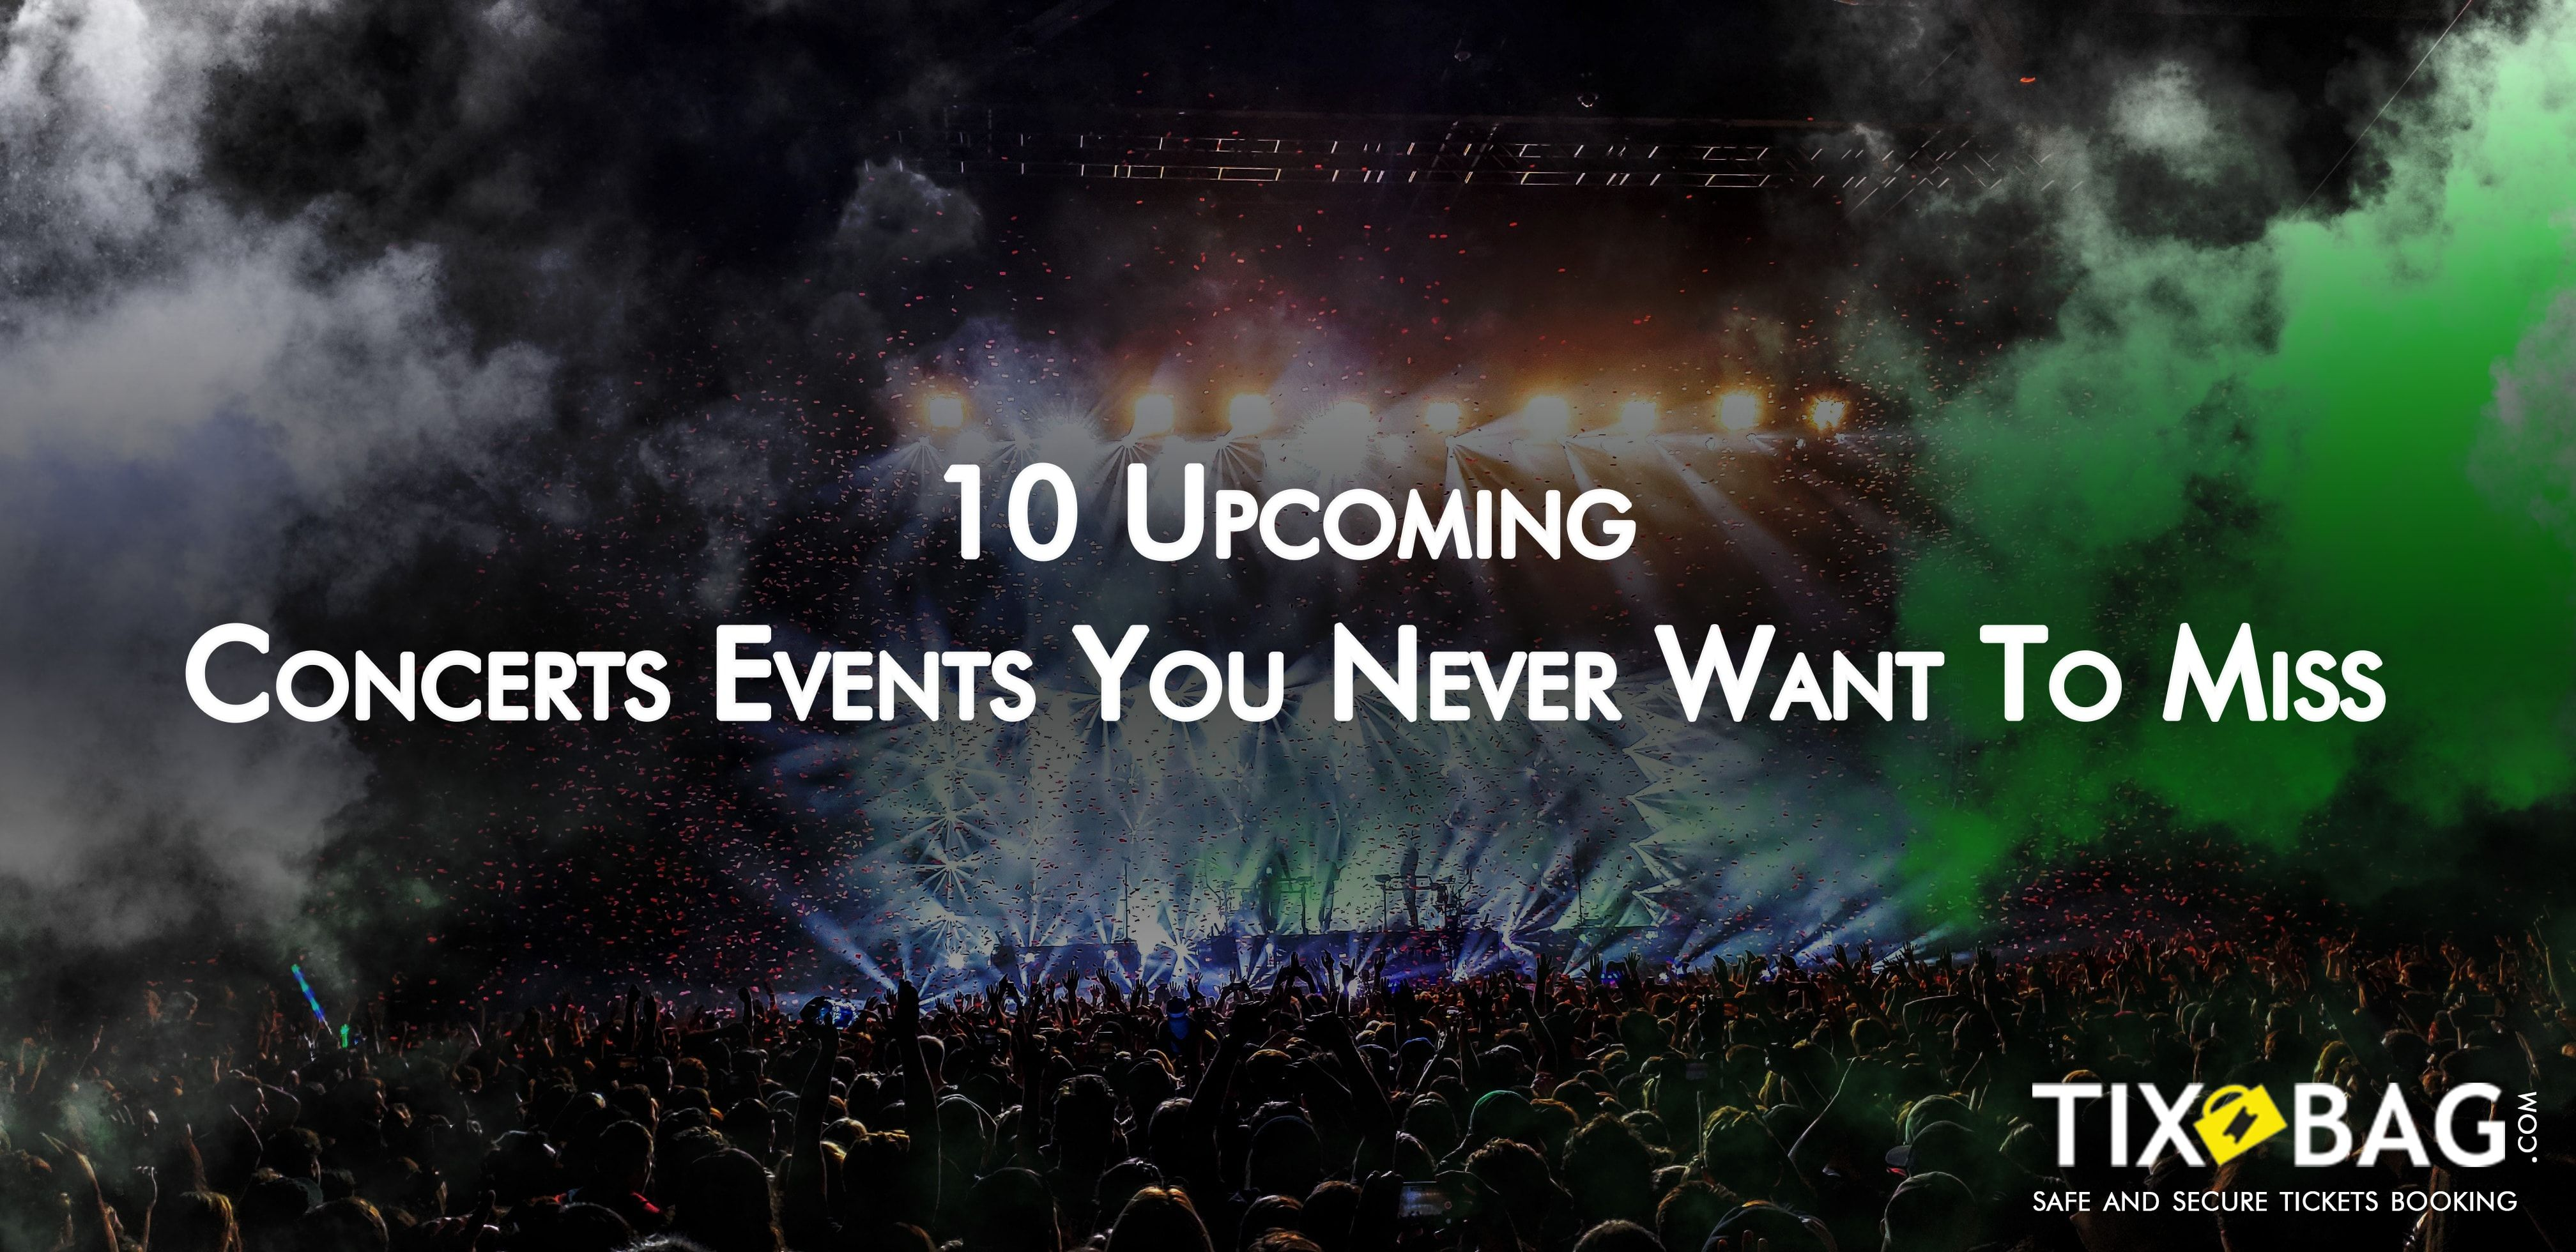 10 Upcoming Music Concerts You Never Want To Miss Tixbag Music Concert Concert Upcoming Concerts